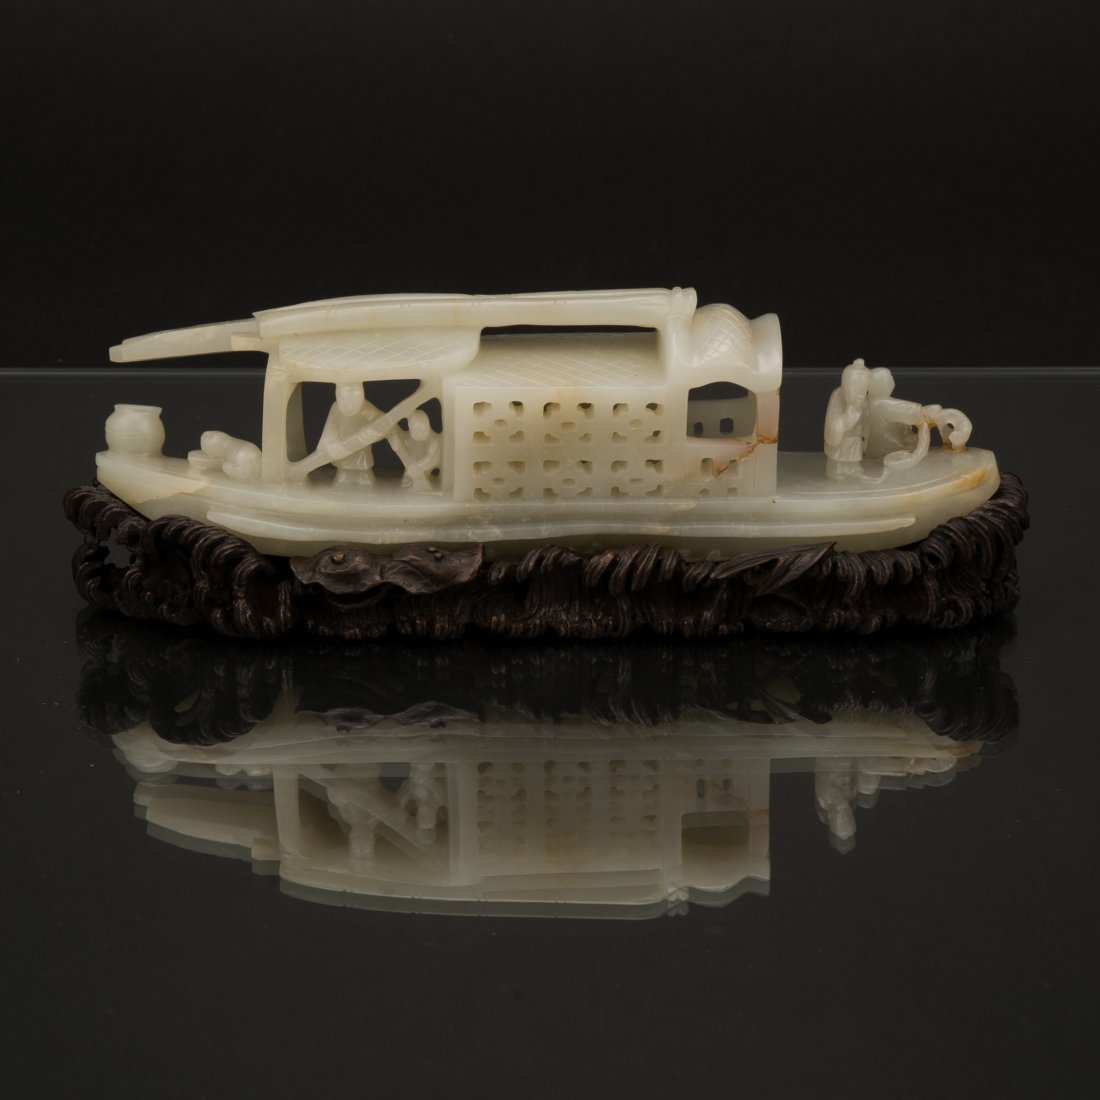 CARVED JADE OF FIGURES ON BOAT